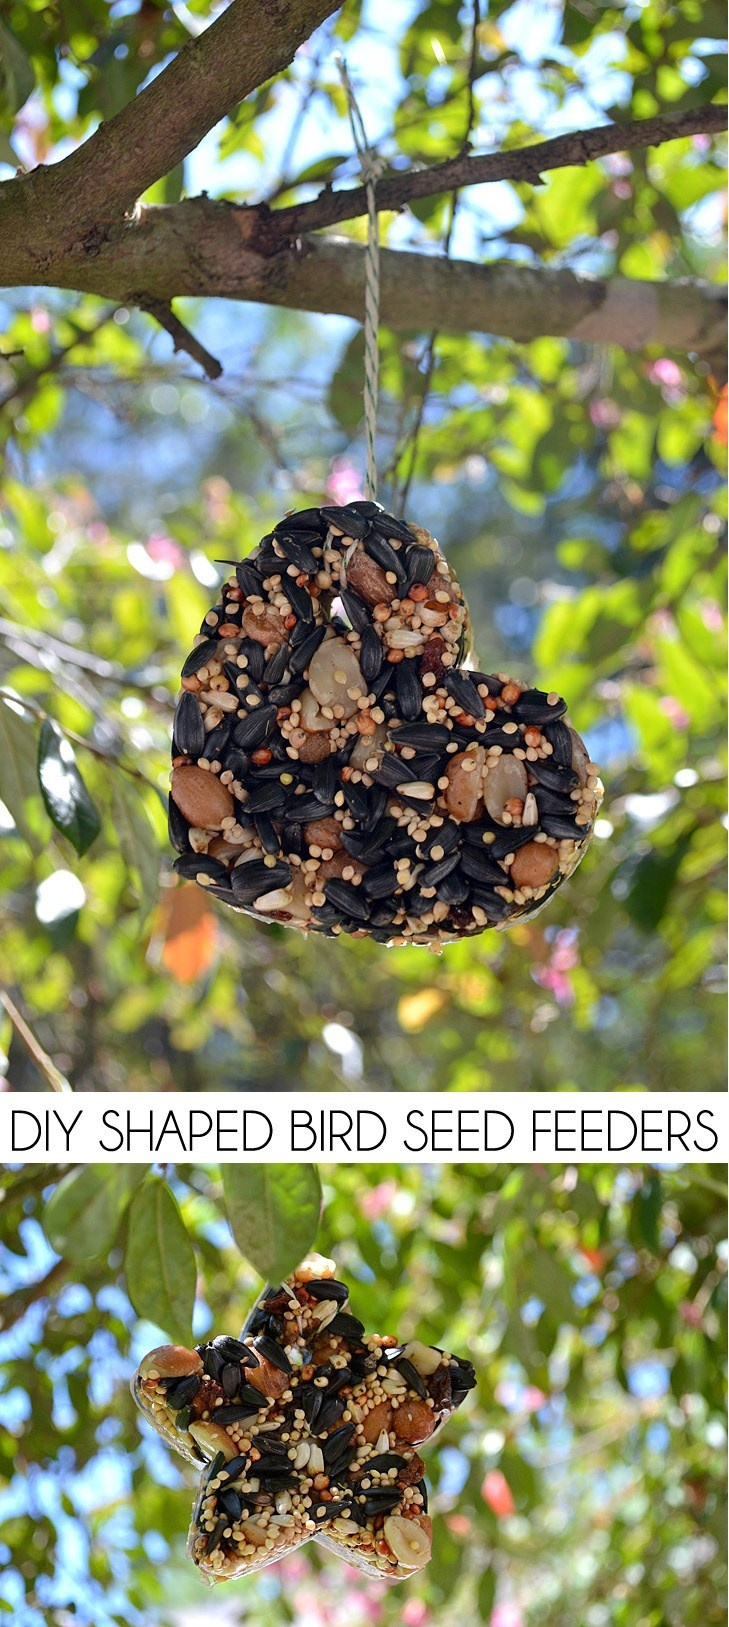 DIY Shaped Birdseed Feeders